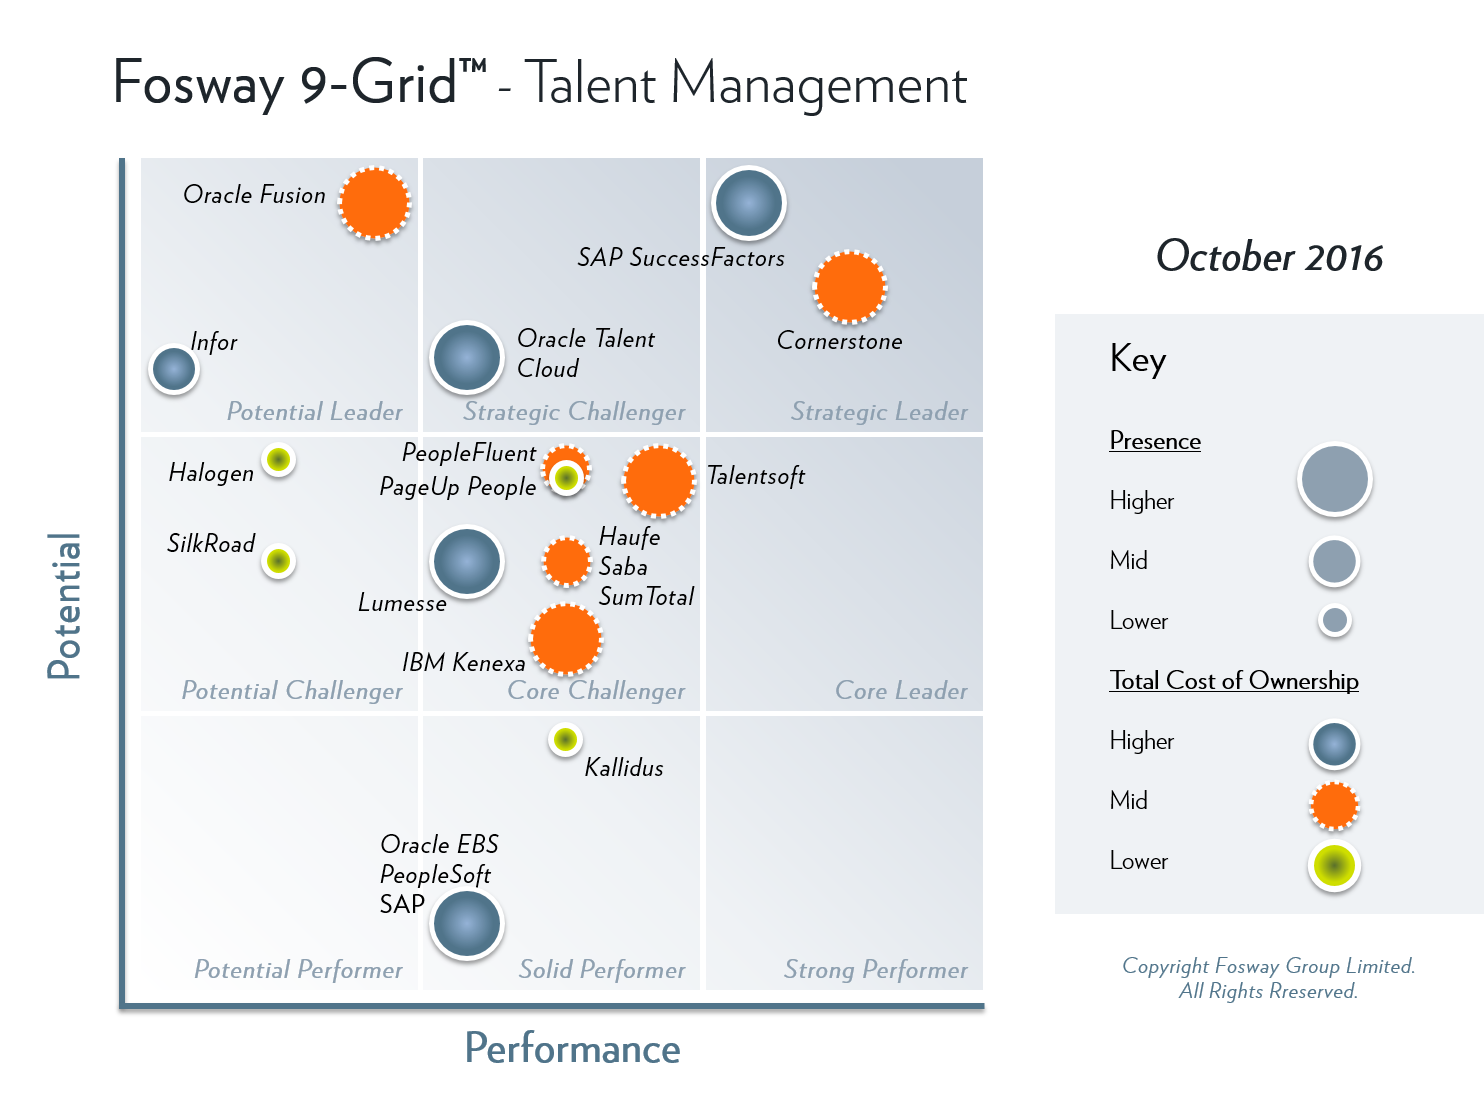 Fosway 9-Grid - Integrated Talent Management Systems 2016